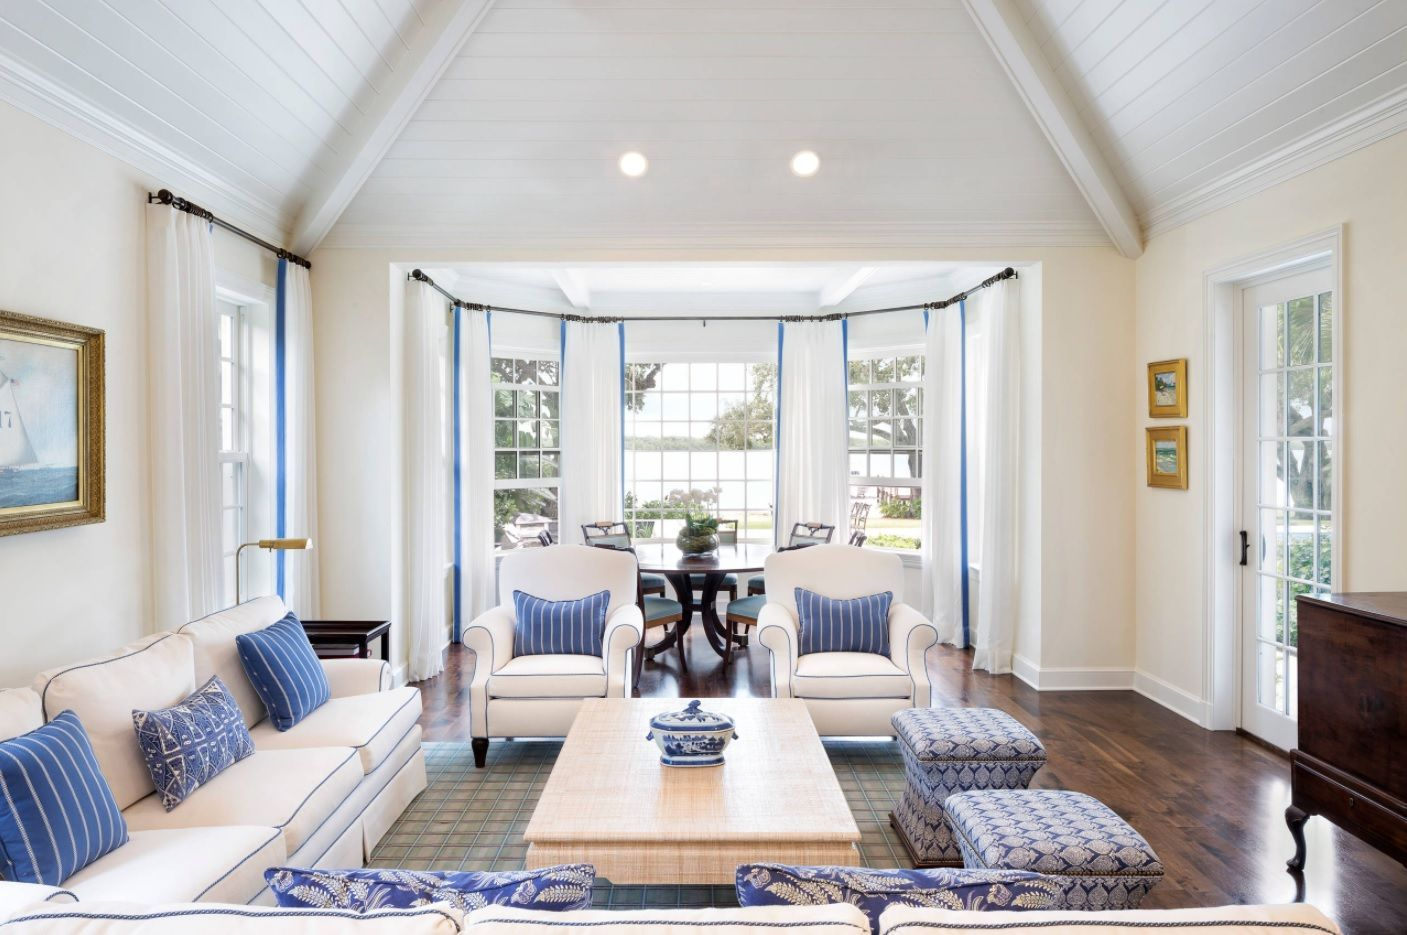 Light finishing of the living room with slight Marine stylistic touch and bay window